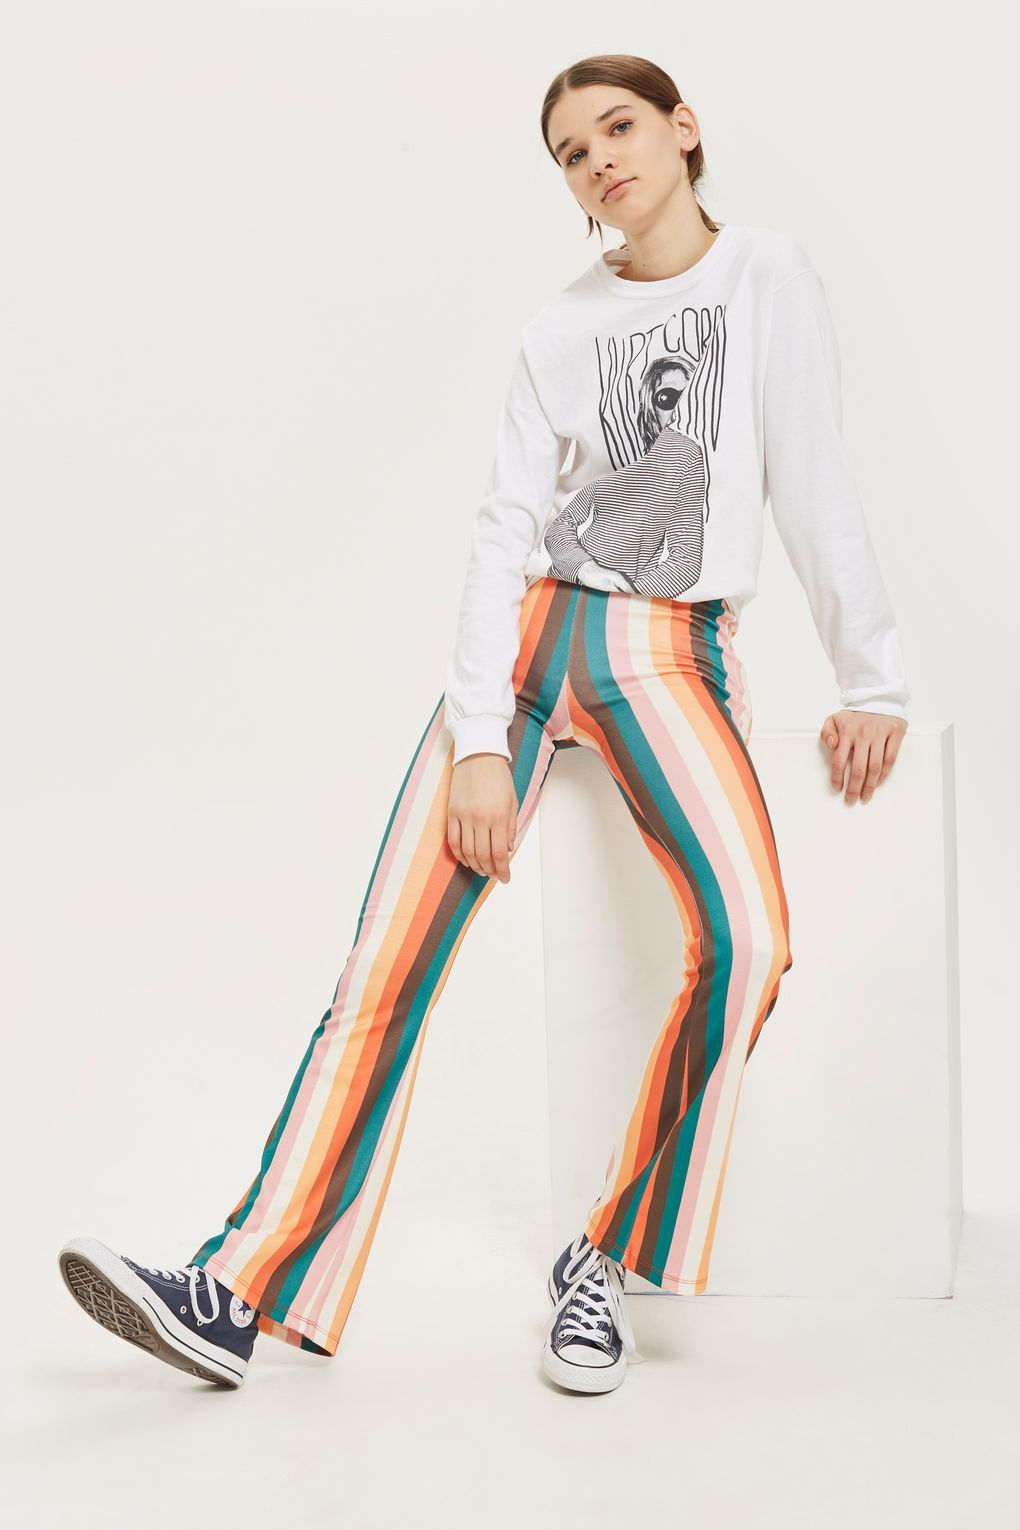 hot-selling professional 100% satisfaction on feet images of Rainbow Striped Flared Trousers | Striped flare pants ...